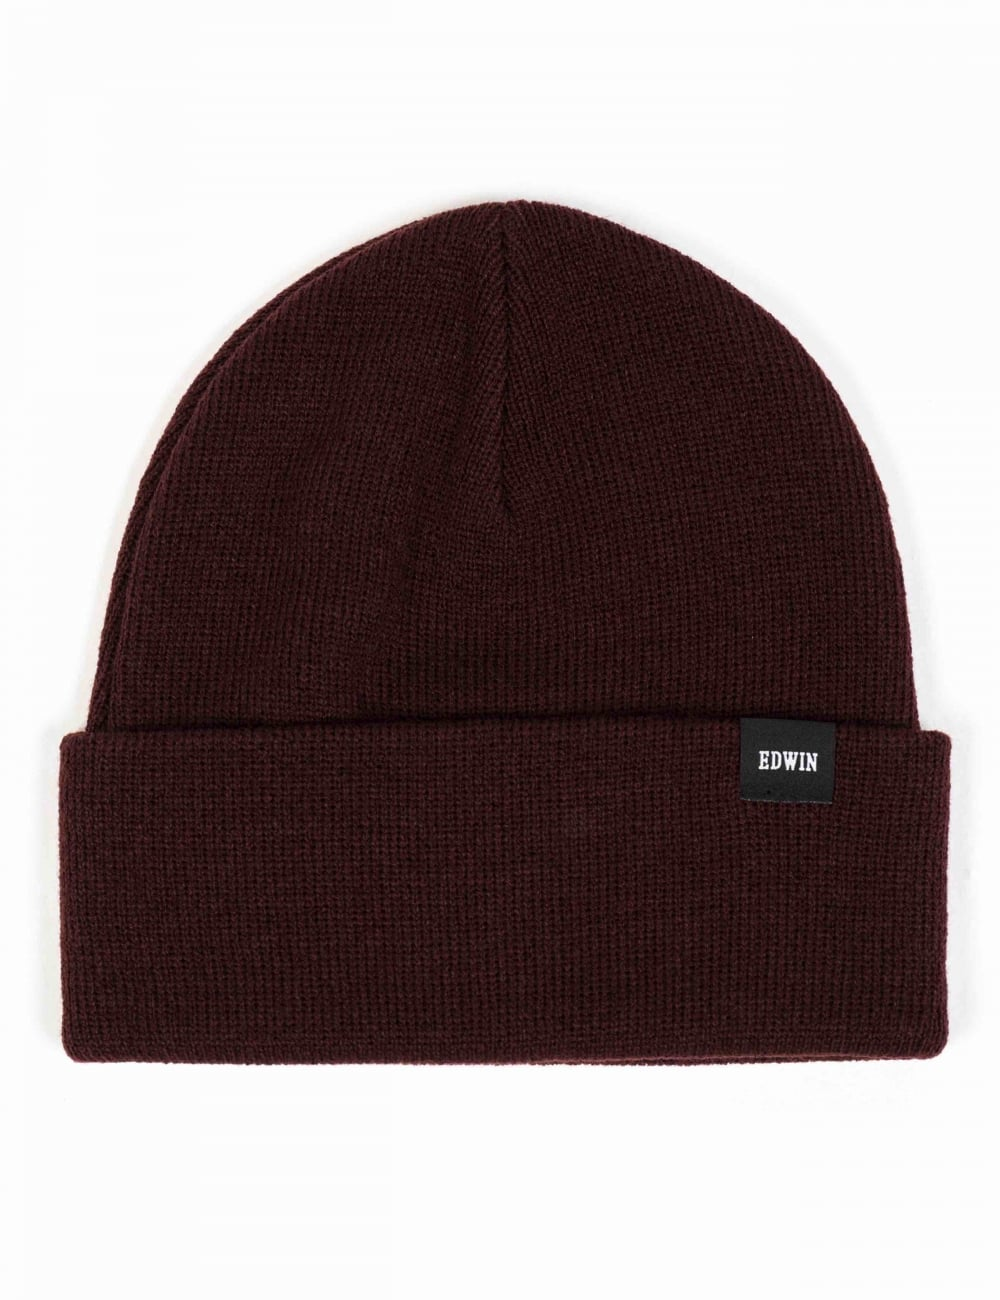 53462633a0c Edwin Jeans Watch Beanie Hat - Cordovan - Accessories from Fat ...